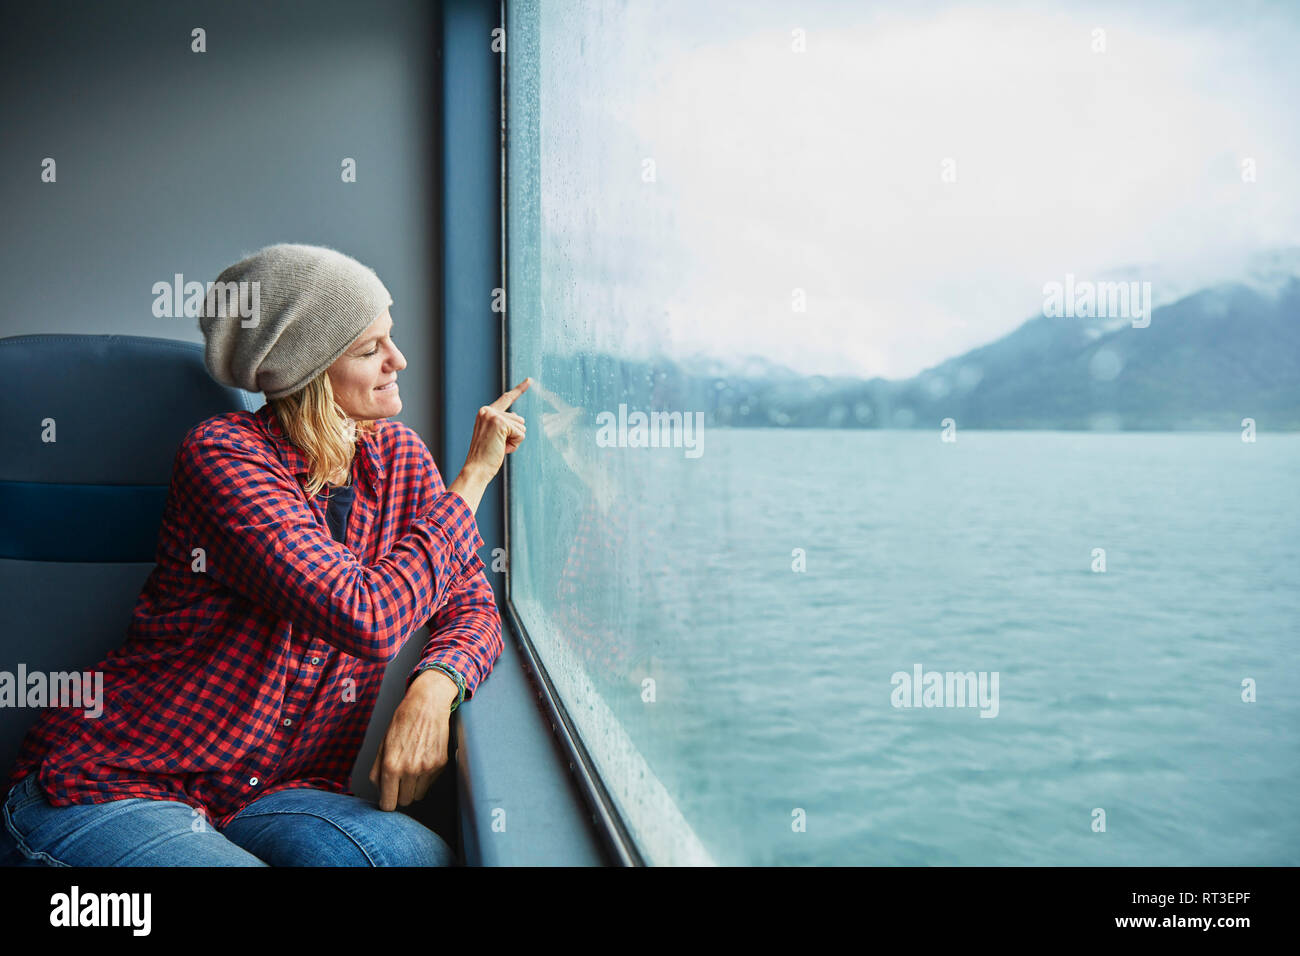 Chile, Hornopiren, woman drawing a heart on the window of a ferry Stock Photo